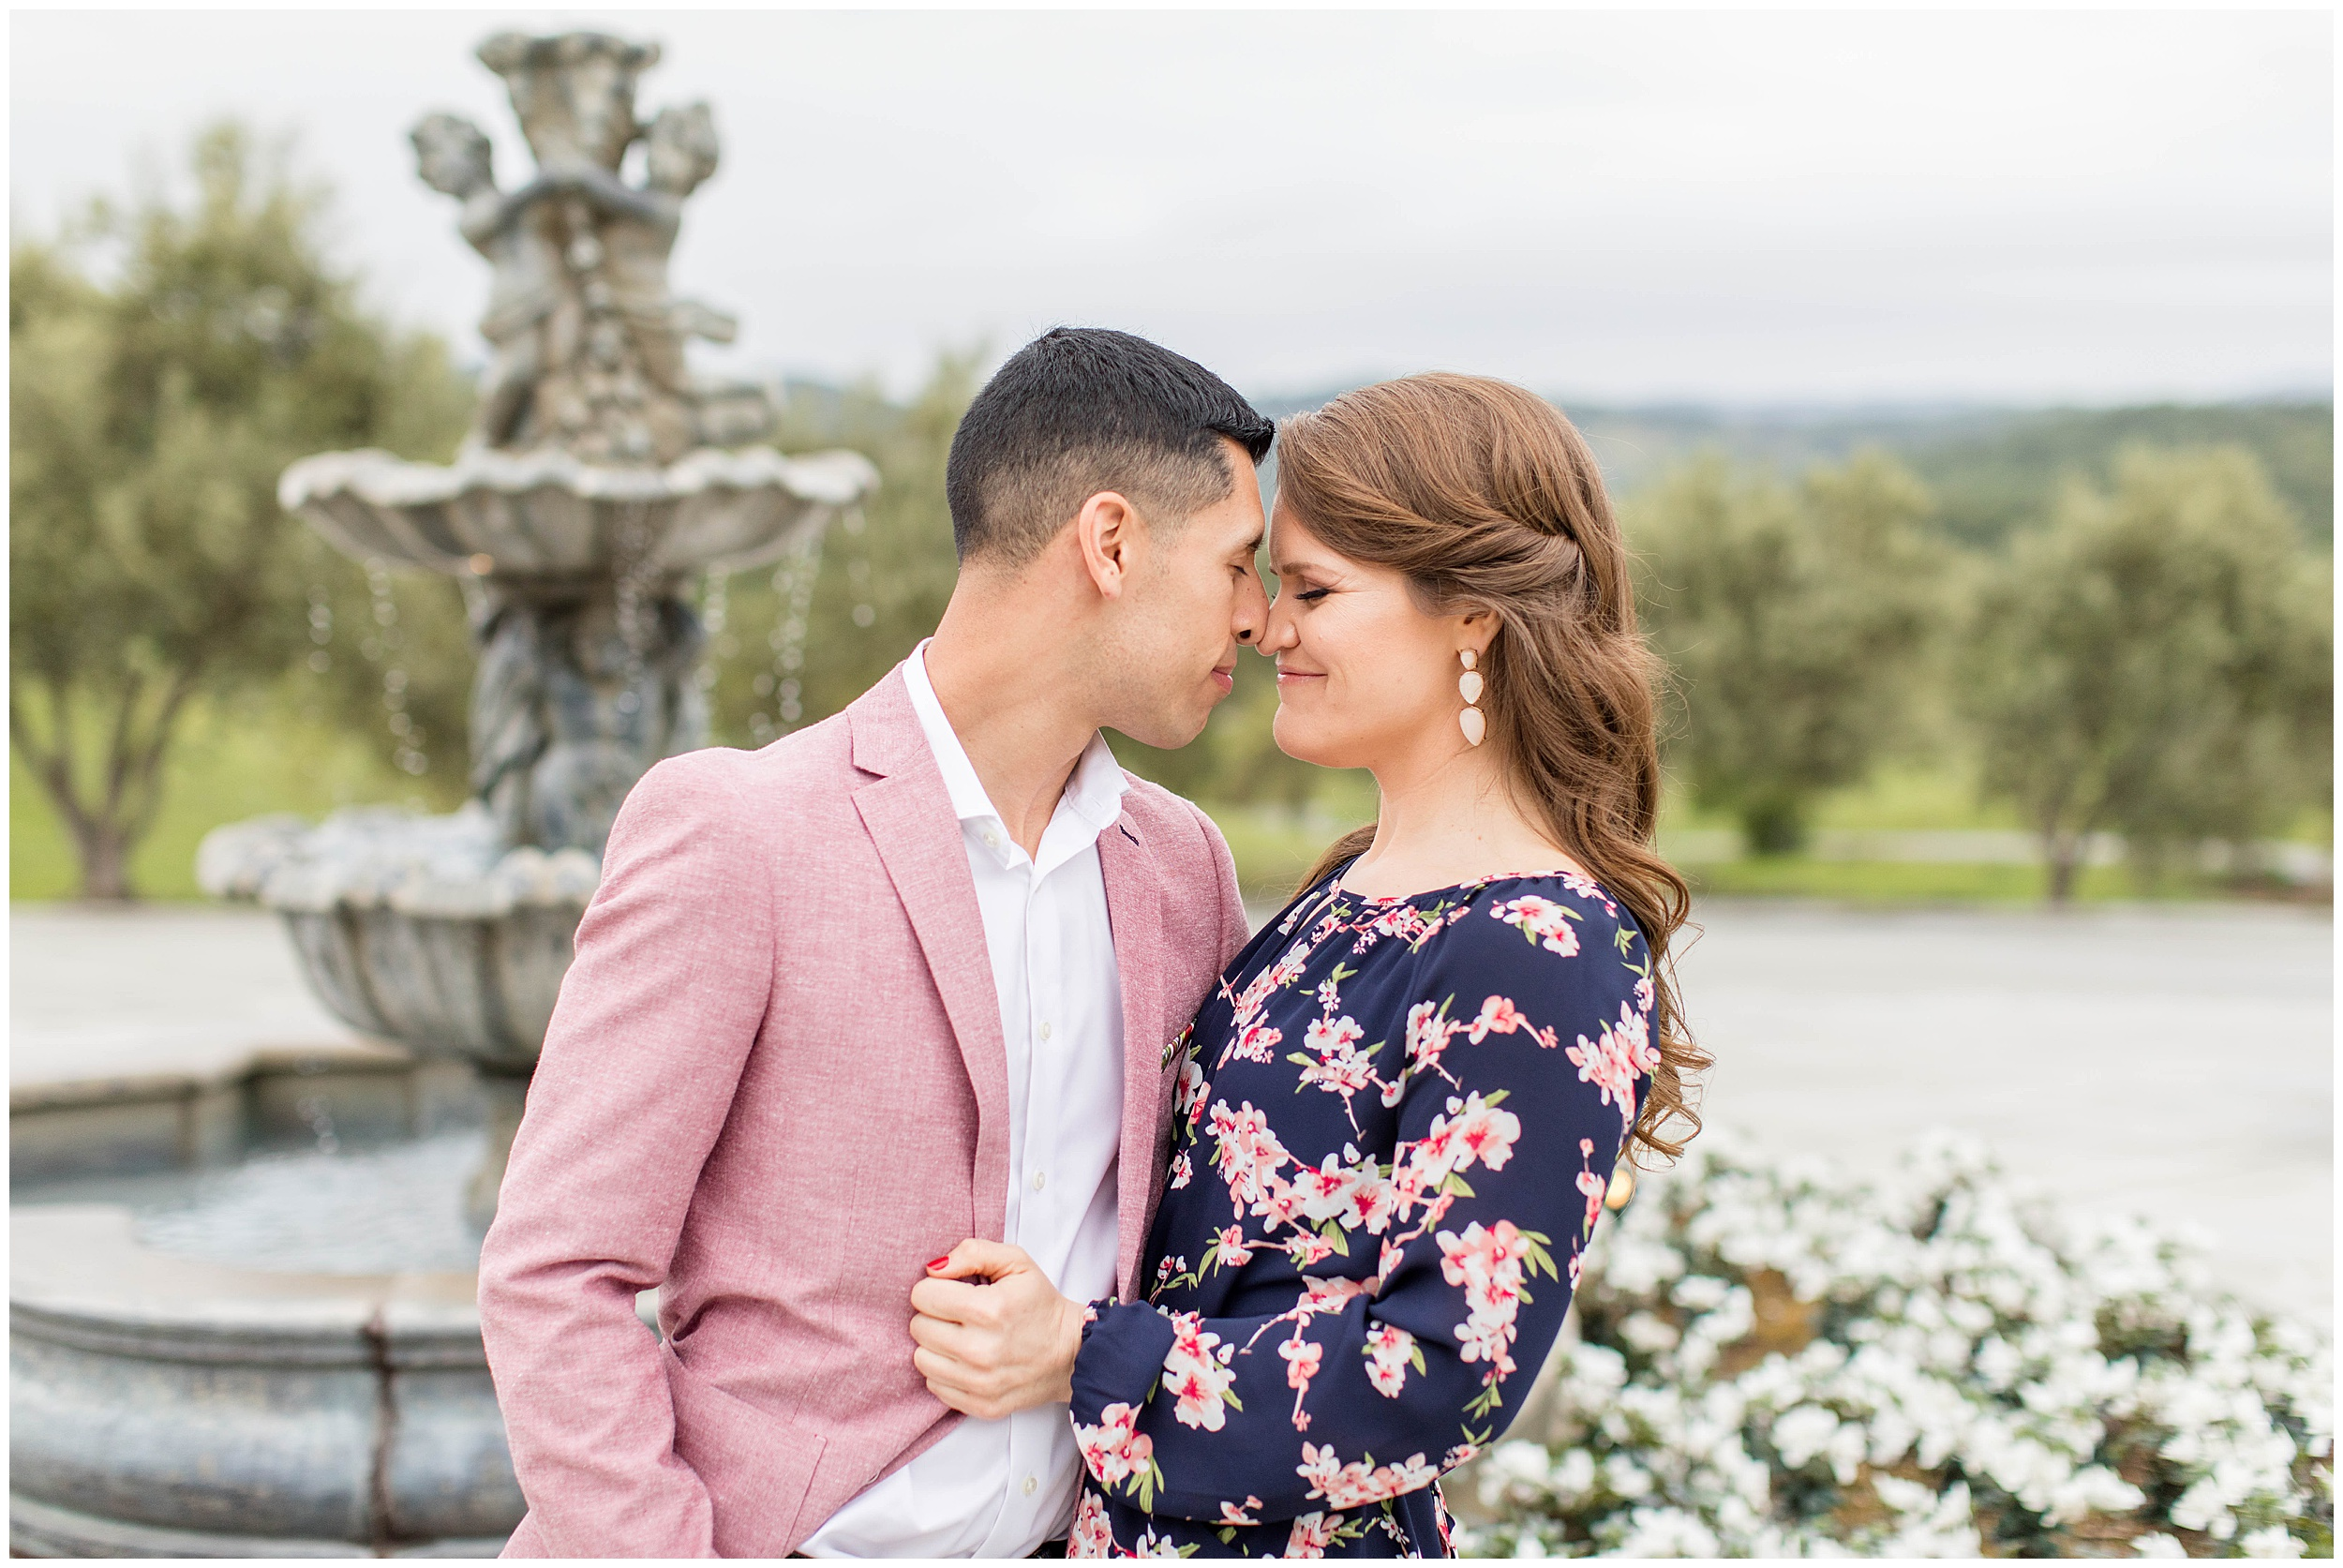 Willow Heights Mansion-San Jose Wedding Photographer-Engagement Session-Angela Sue Photography_0005.jpg